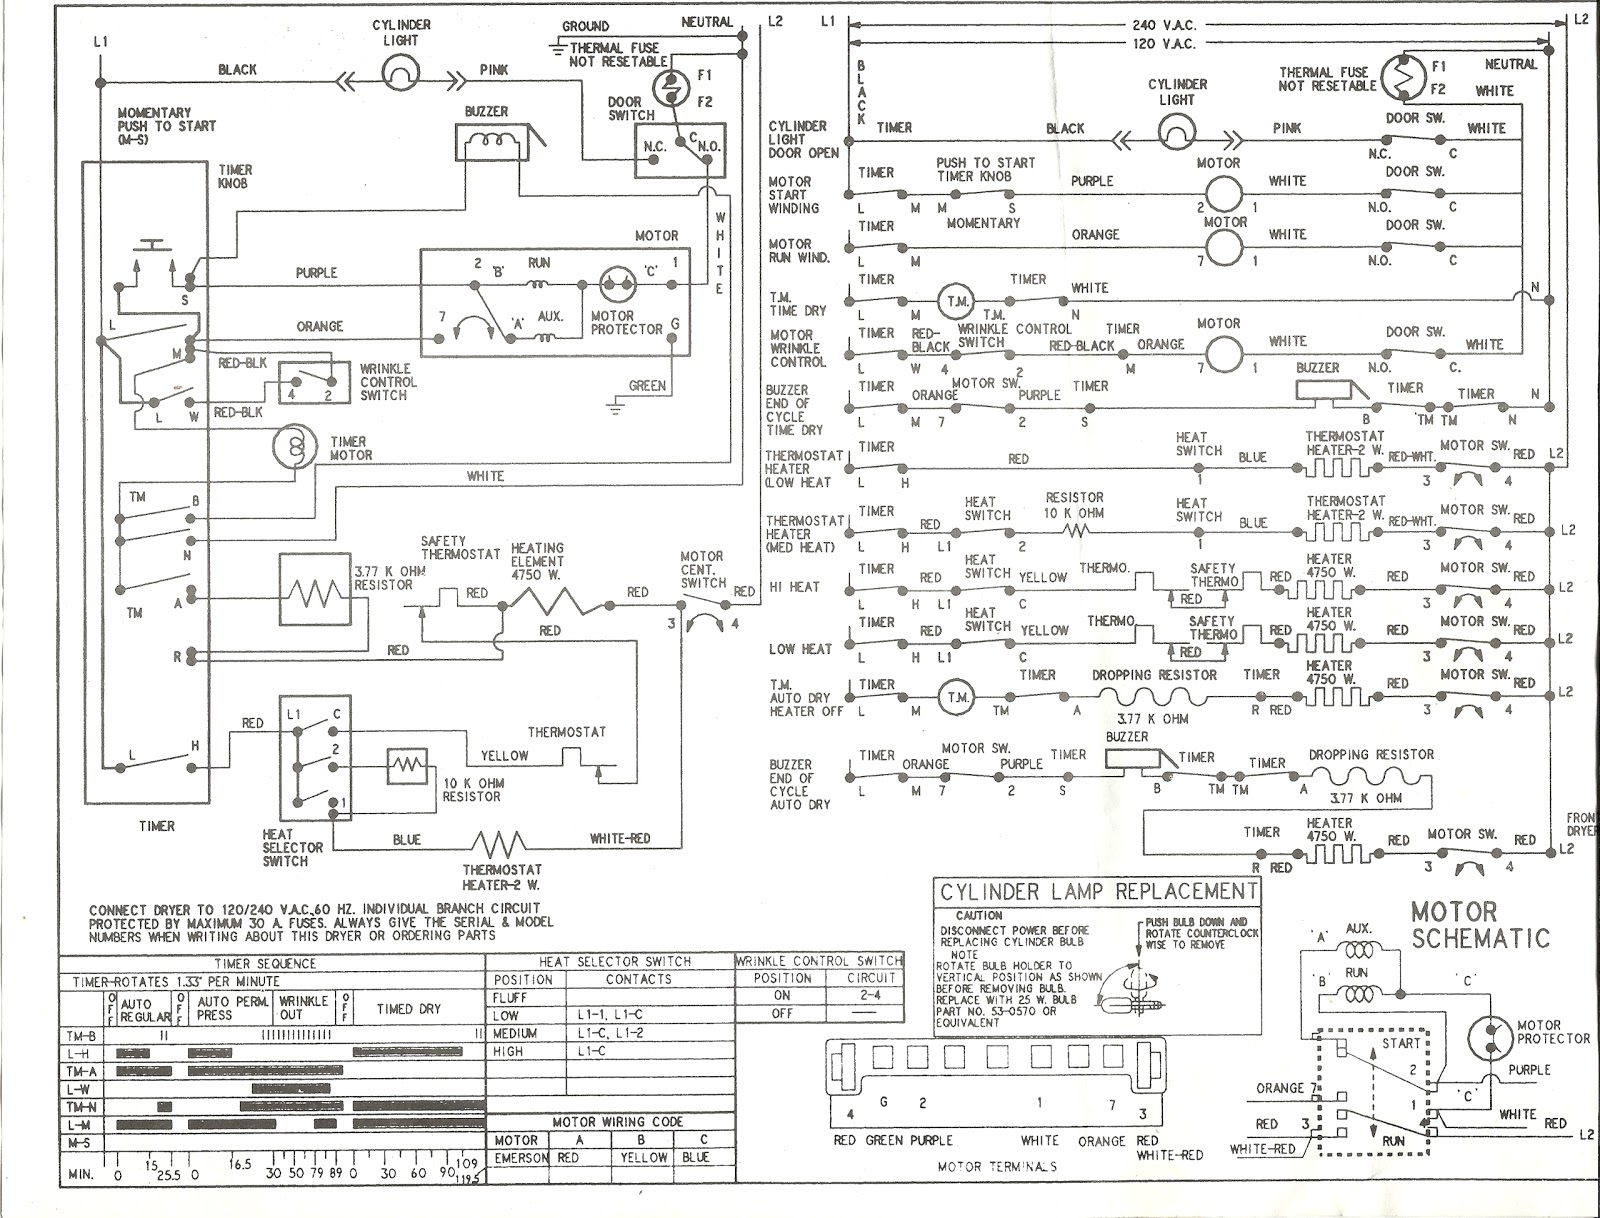 kenmore washer wiring diagram on wiring diagram parts wiring for kenmore 80 series washer parts diagram wiring diagram for whirlpool washer on wiring download wirning  at bayanpartner.co